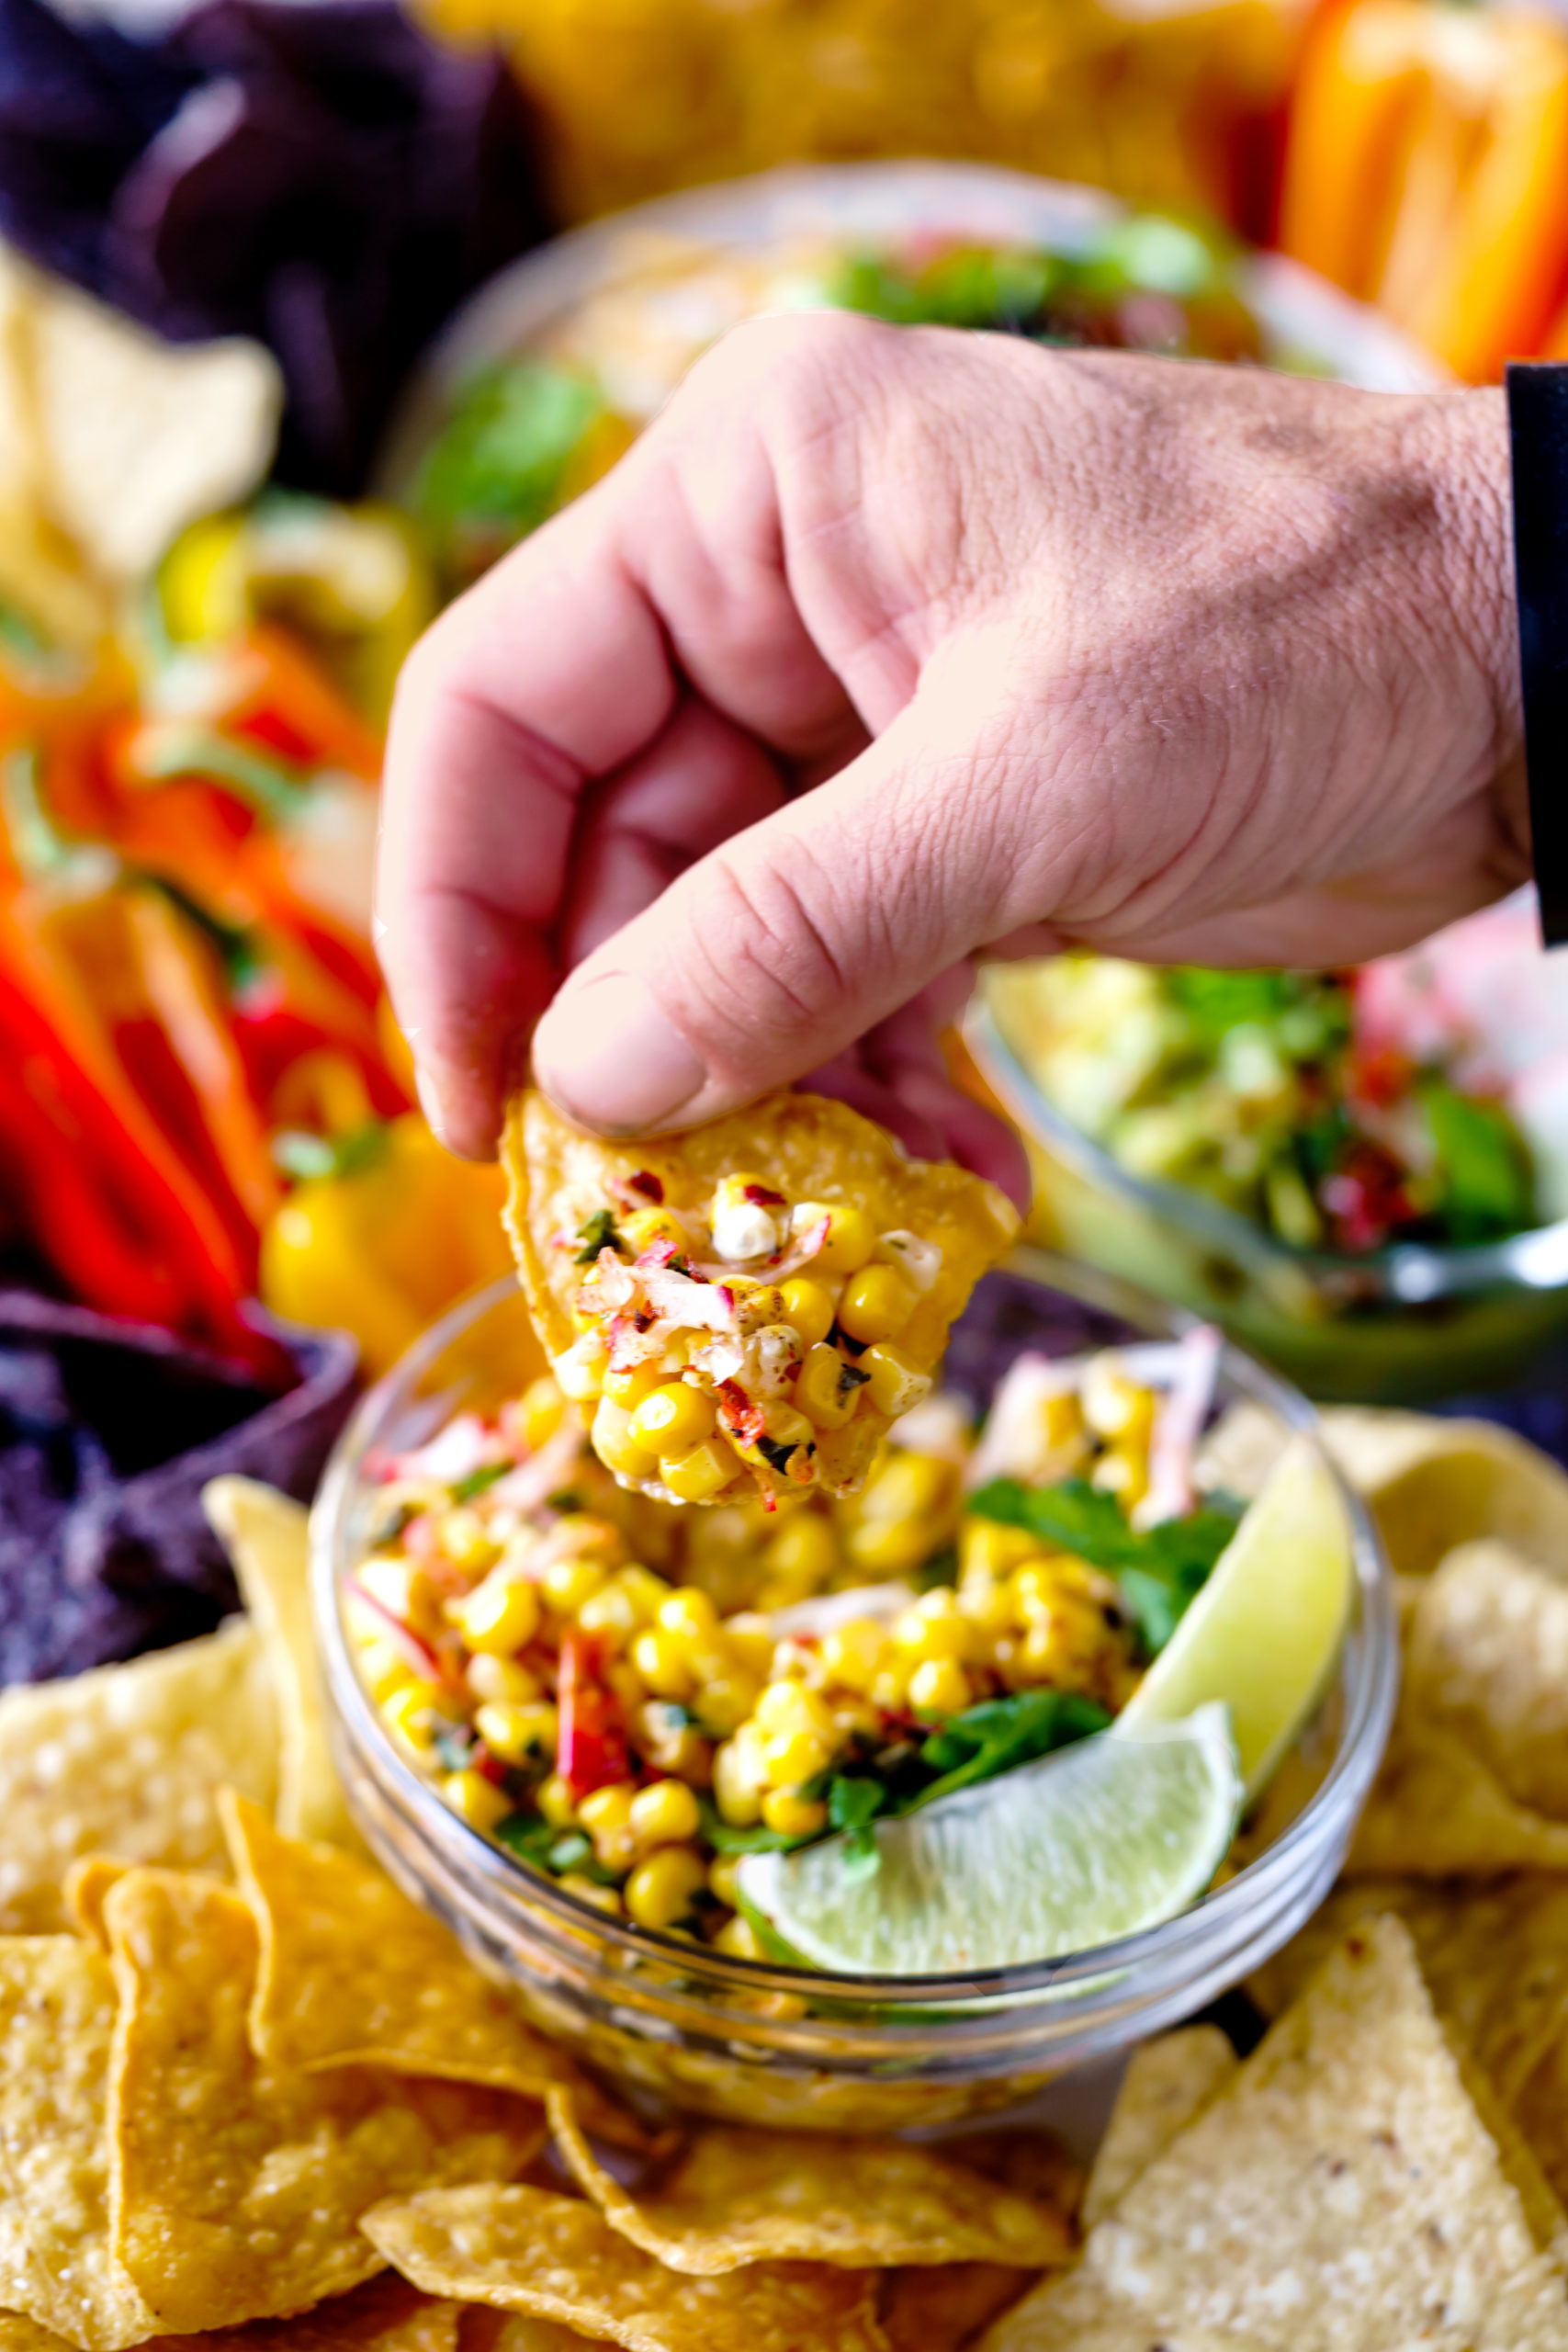 Mexican Corn Dip served with chips and crispy vegetables.